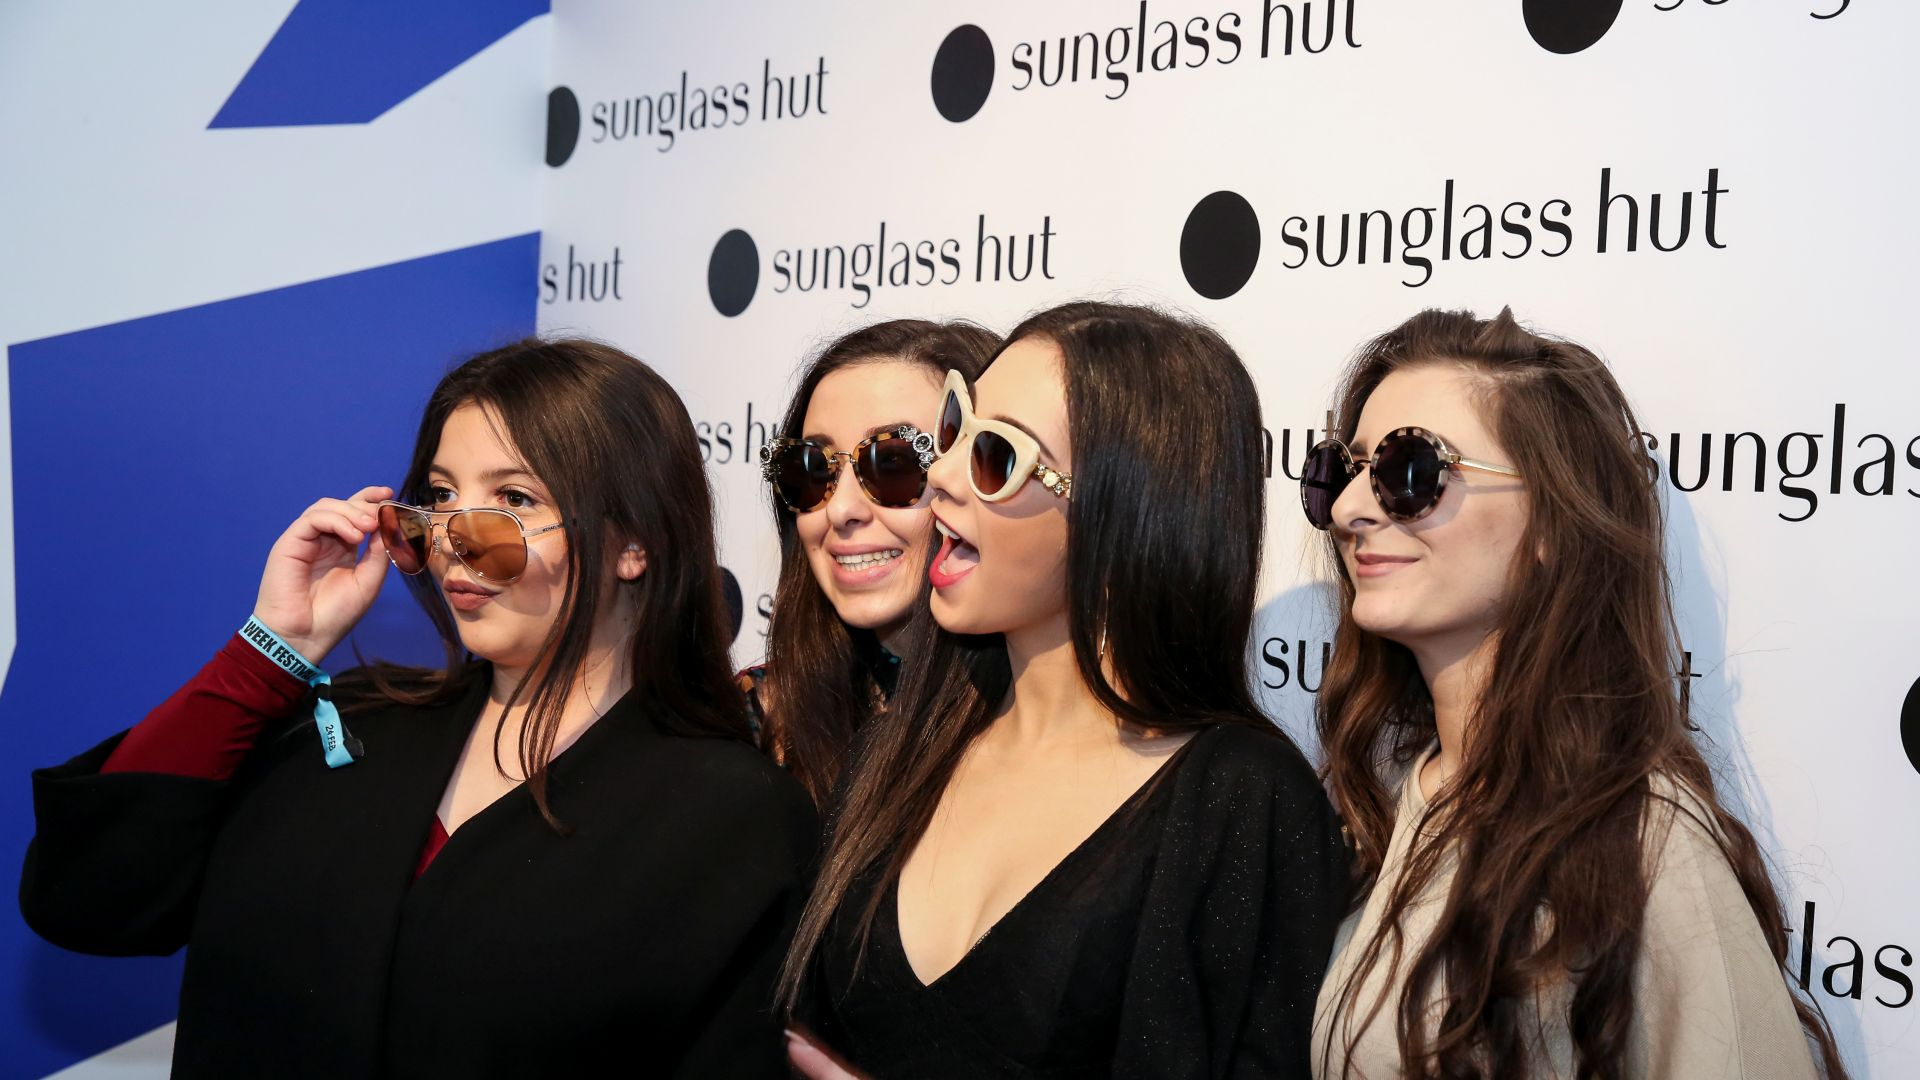 home-sunglasses